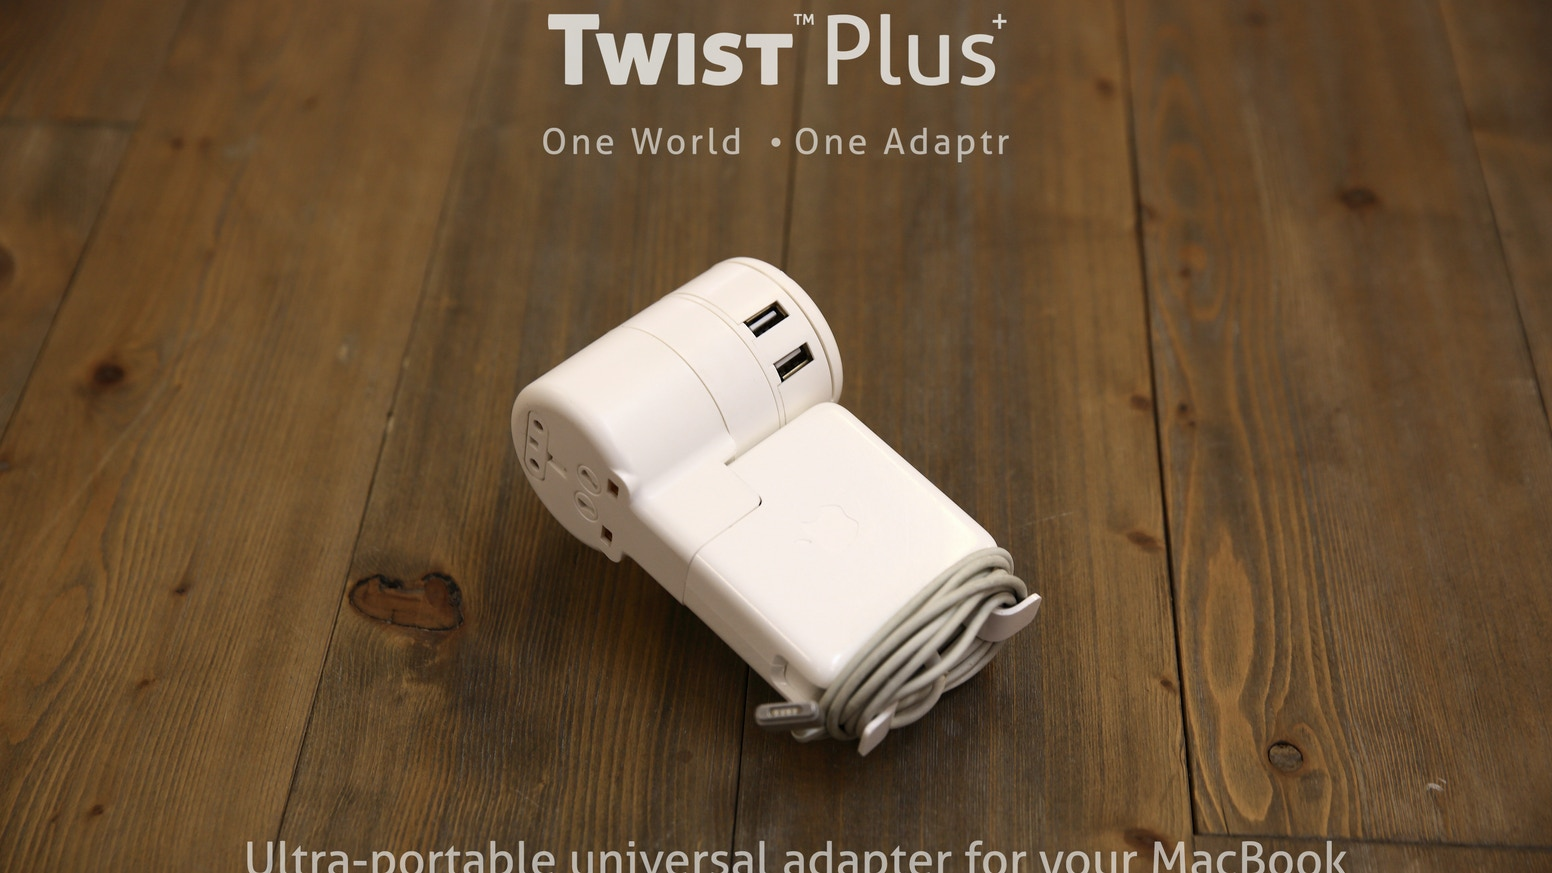 Twist is a ultra-portable universal adapter for MacBook with optional 4 USB charging ports, universal outlet and easy to use design.